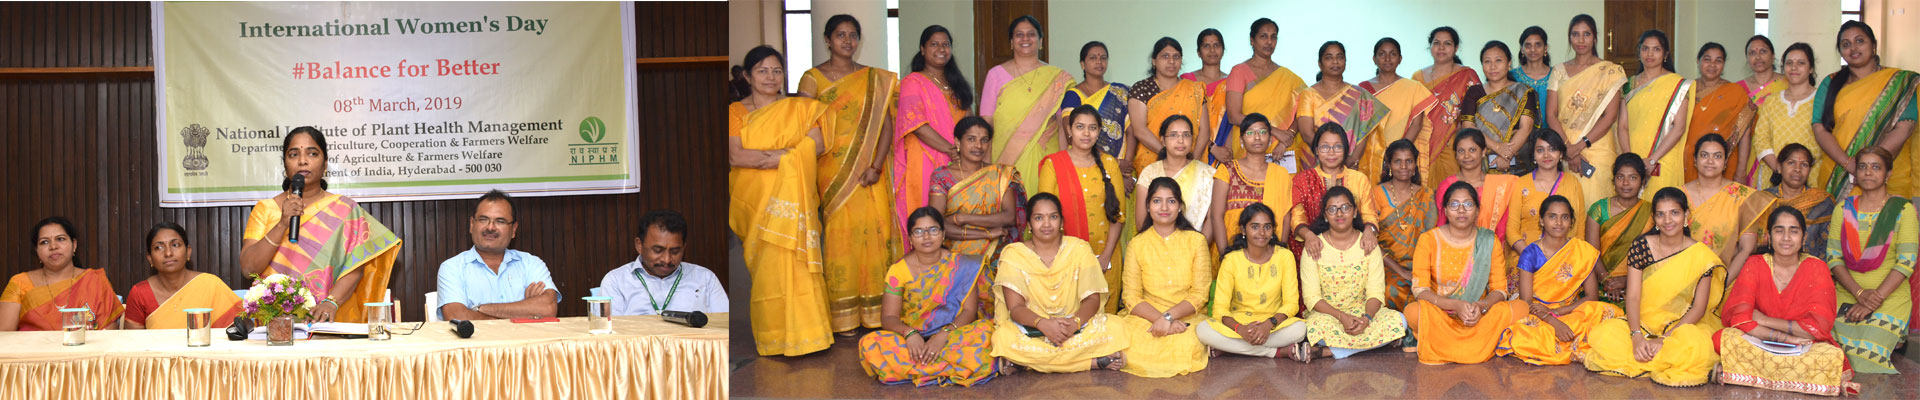 International Women's Day Celebrations at NIPHM